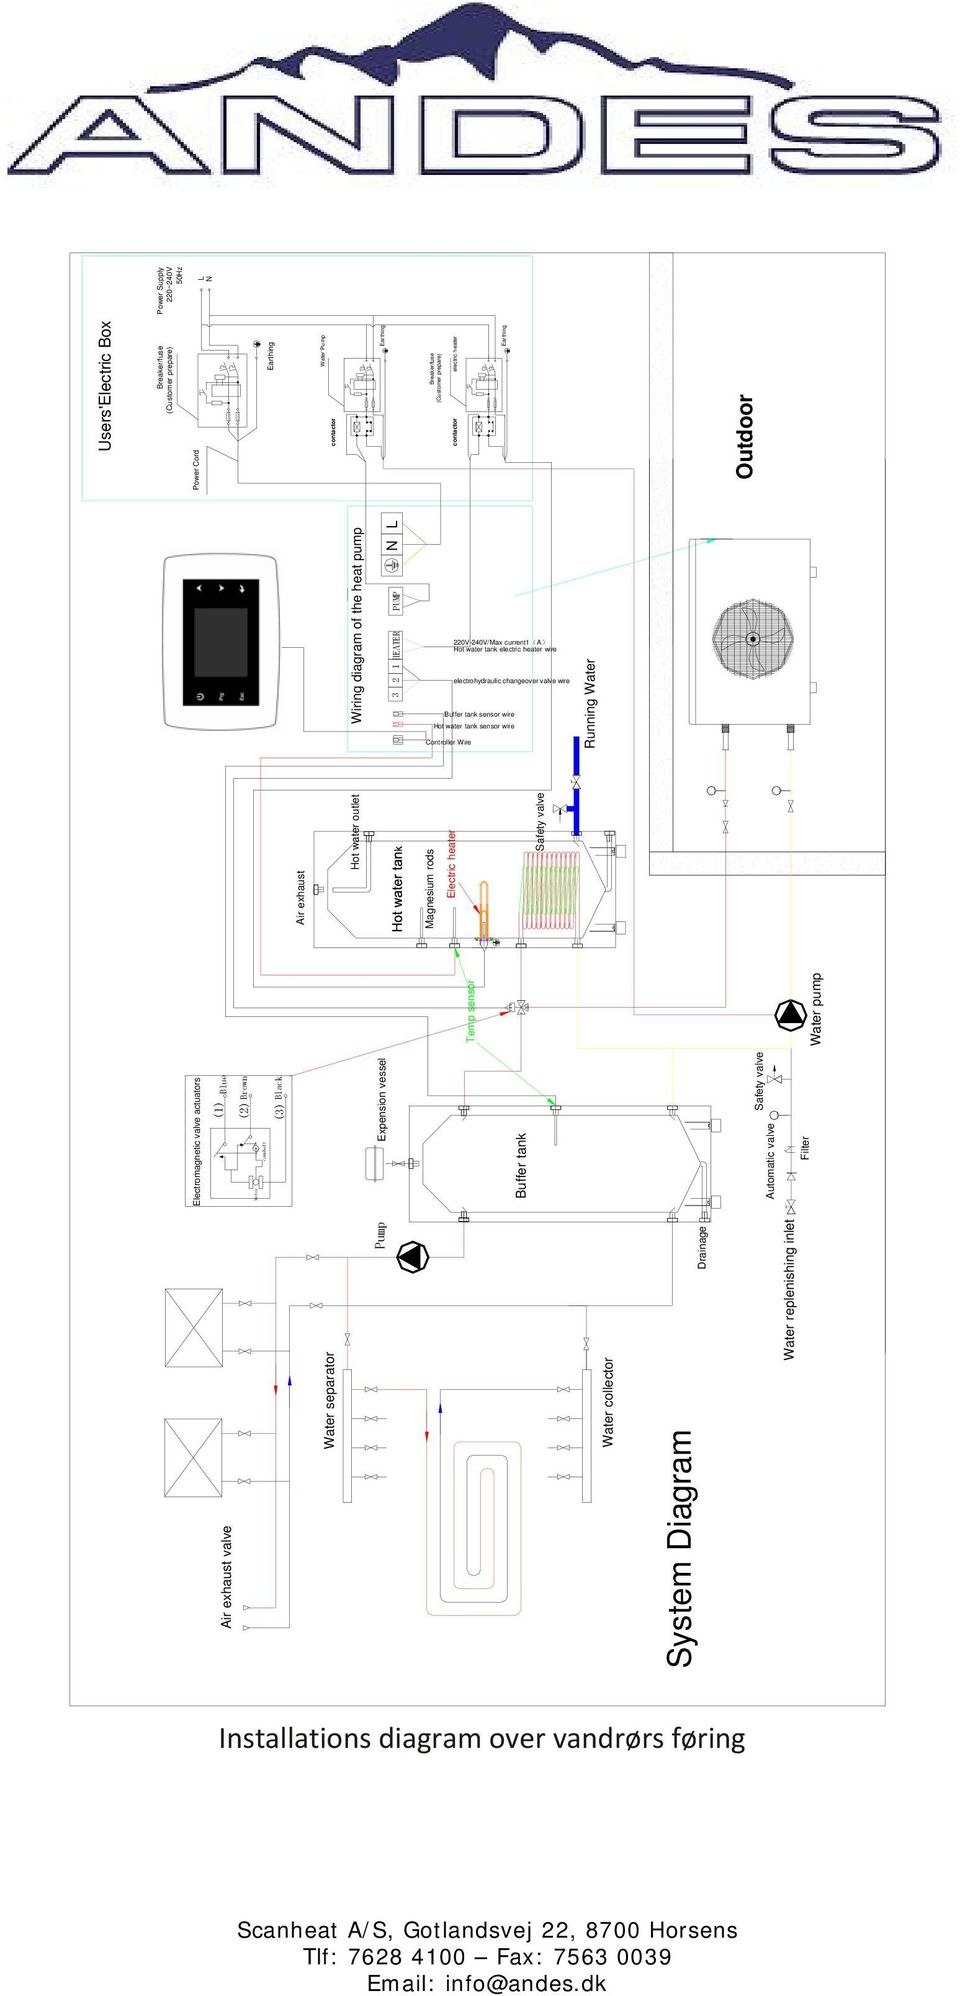 L Power Supply 220~240V 50Hz L N B Wiring diagram of the heat pump PUMP HEATER Users'Electric Box Water Pump contactor Earthing Breaker/fuse (Customer prepare) contactor electric heater Earthing AB A